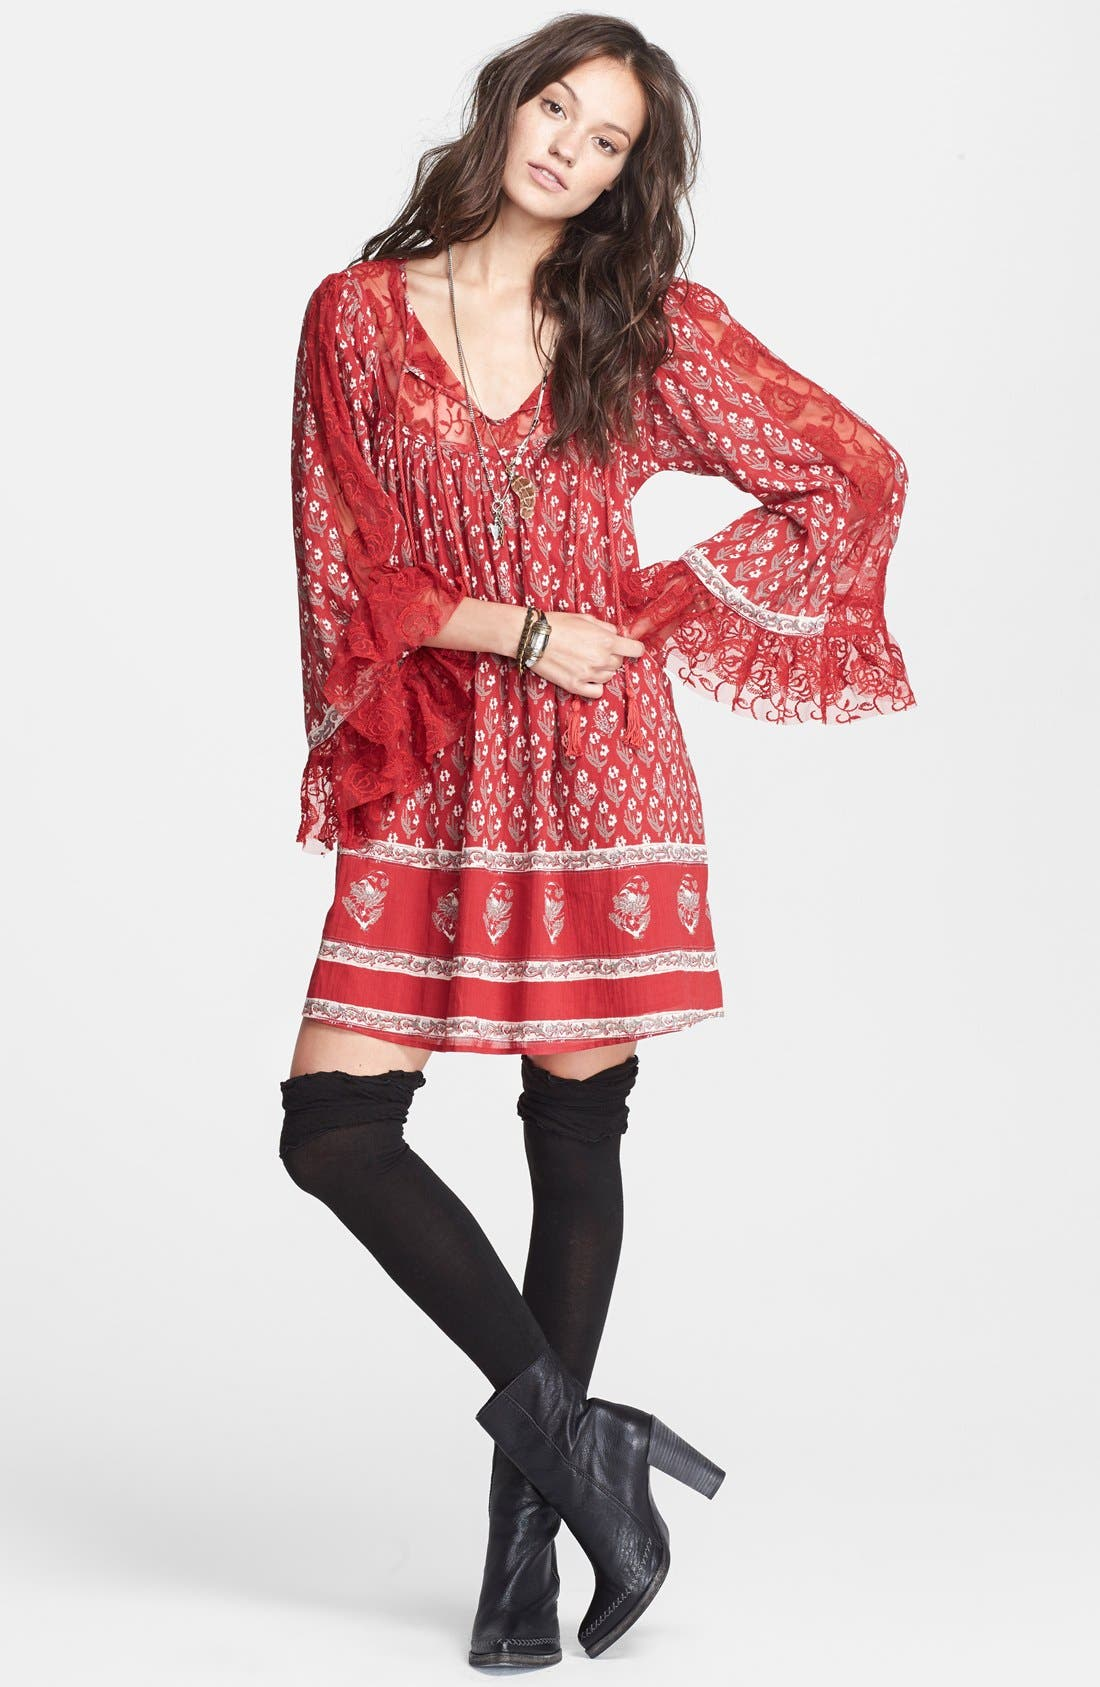 Main Image - Free People Floral Print Butterfly Sleeve Cotton Dress